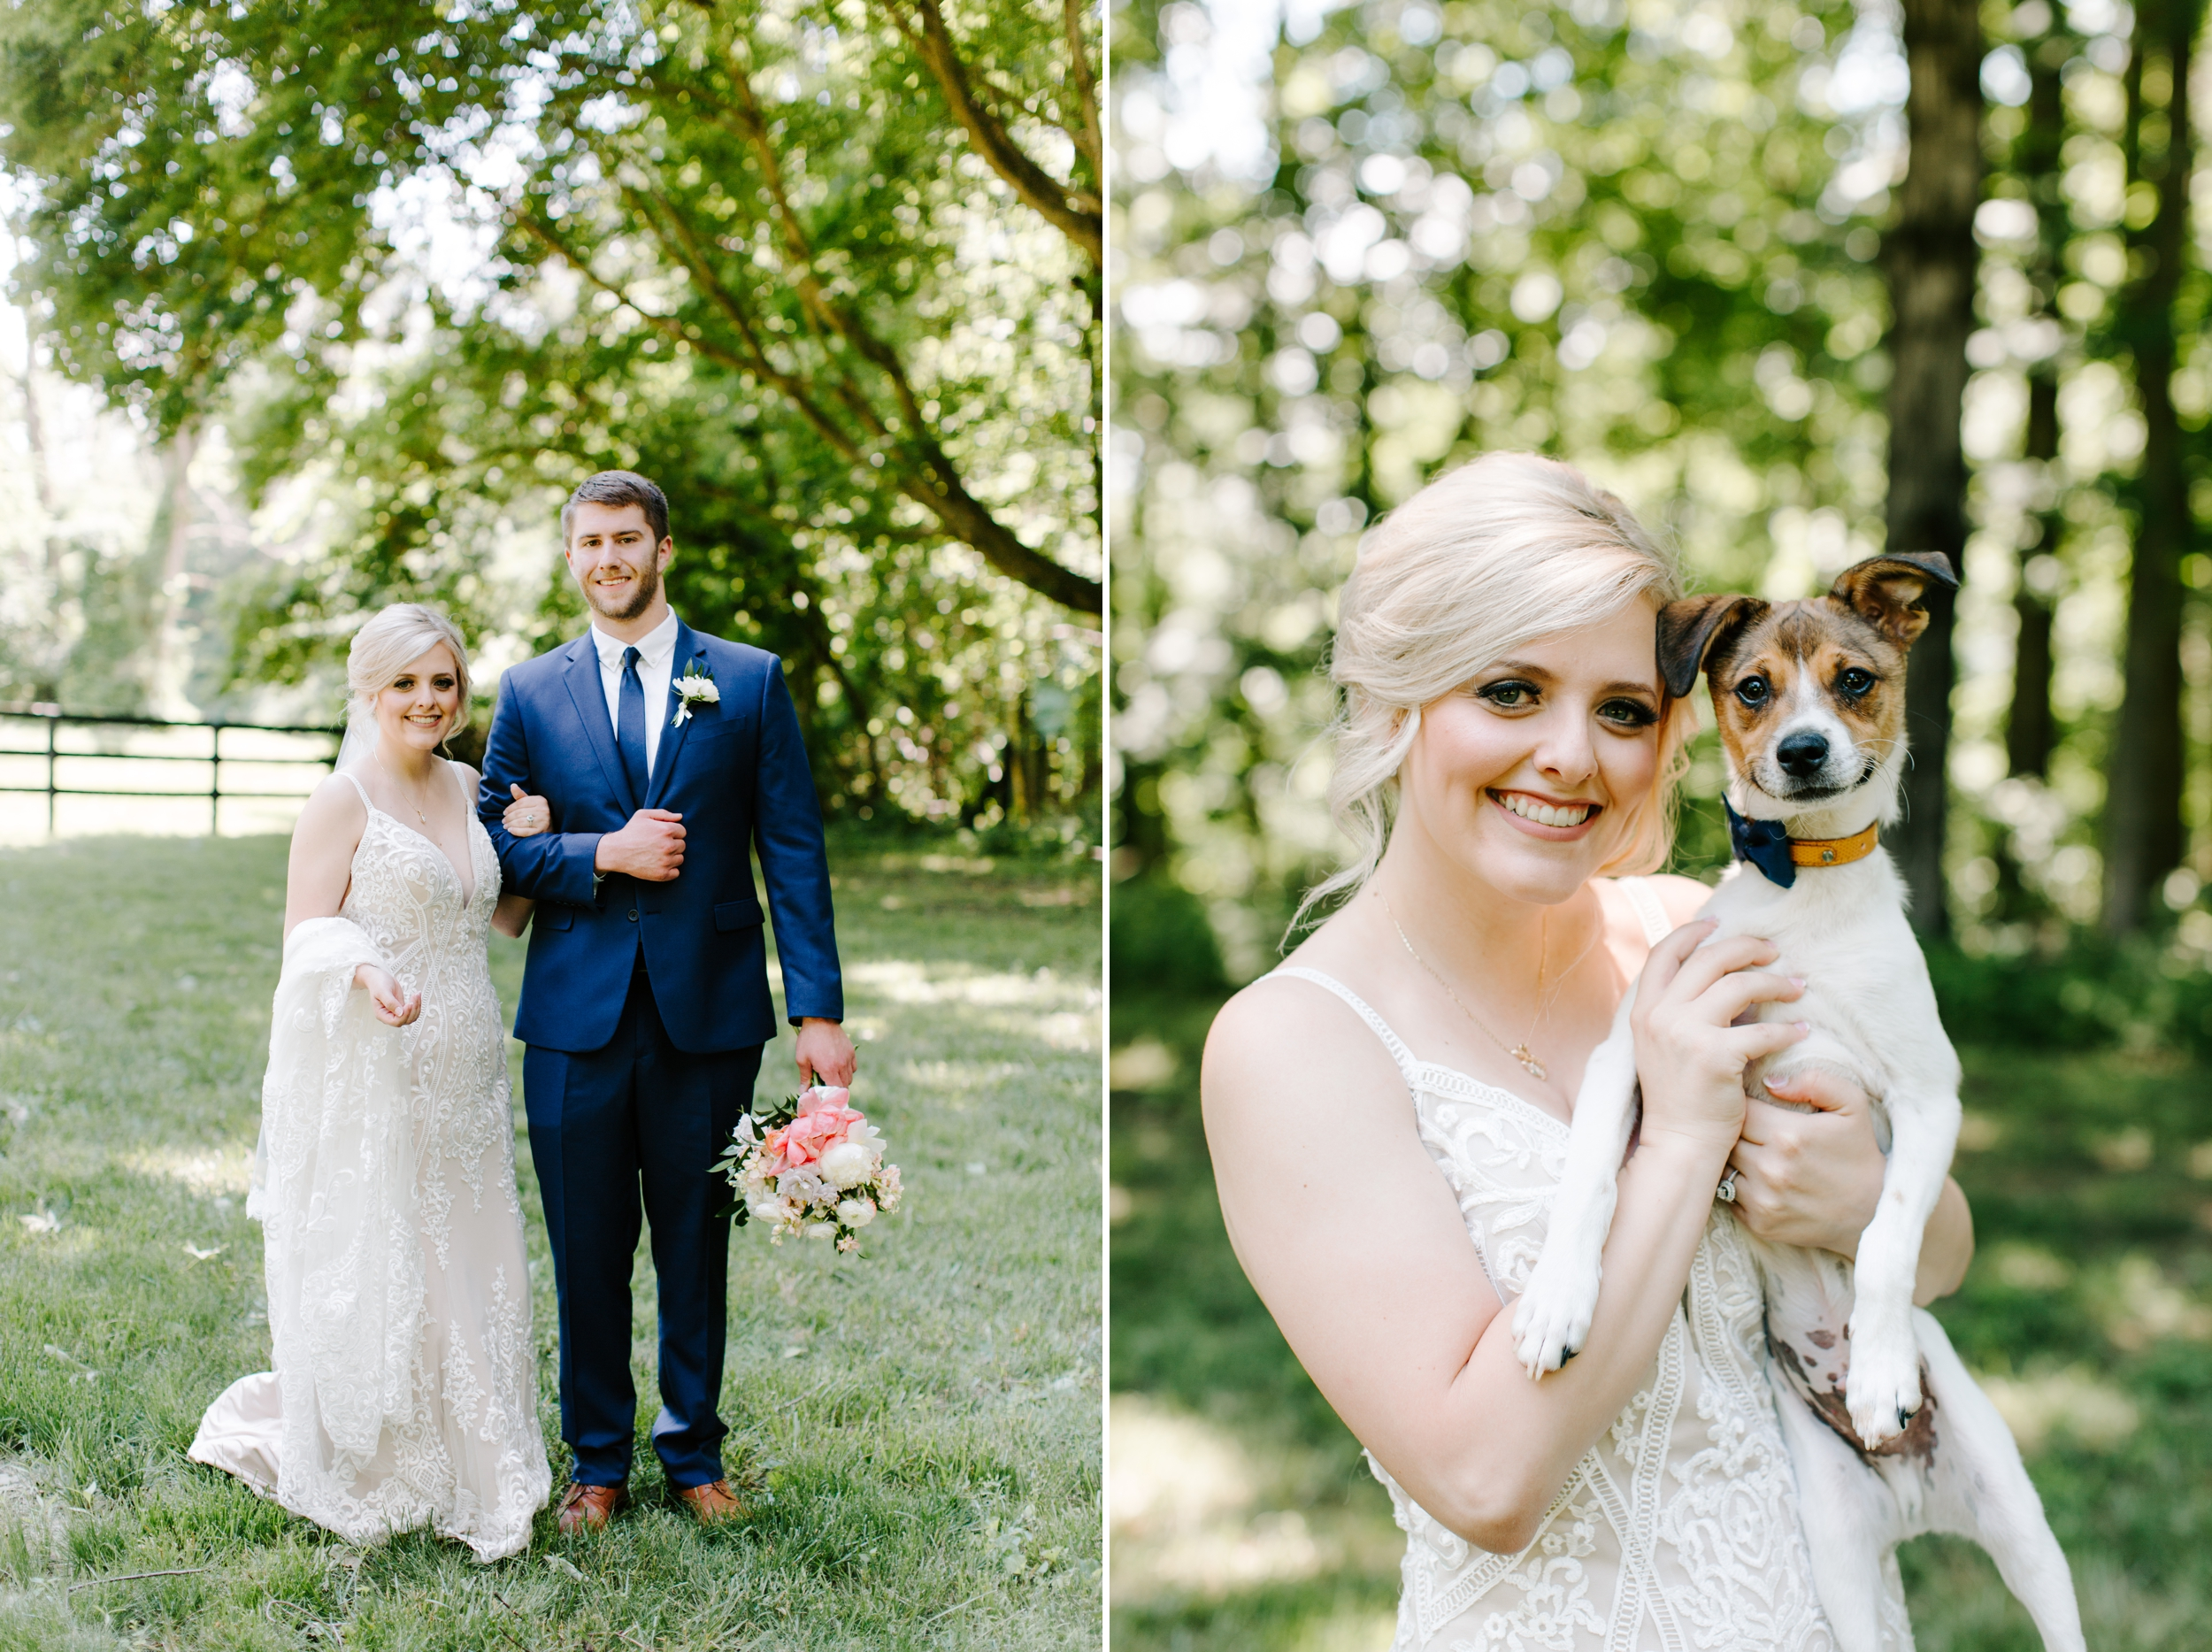 bride-and-groom-with-dog.jpg